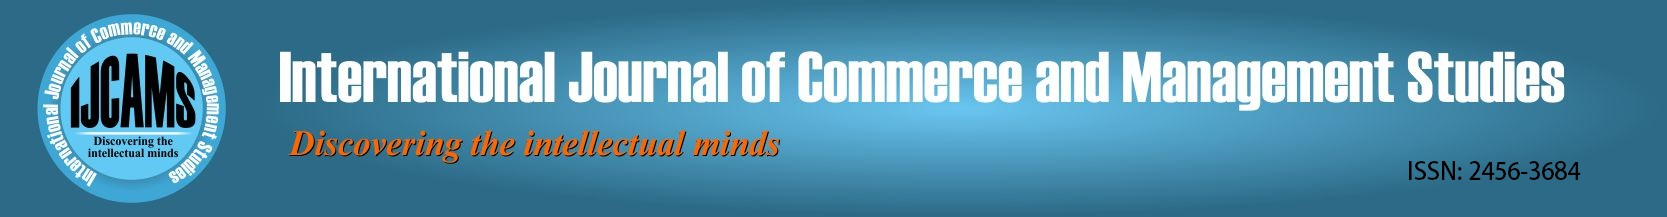 International journal of Commerce and Management Studies